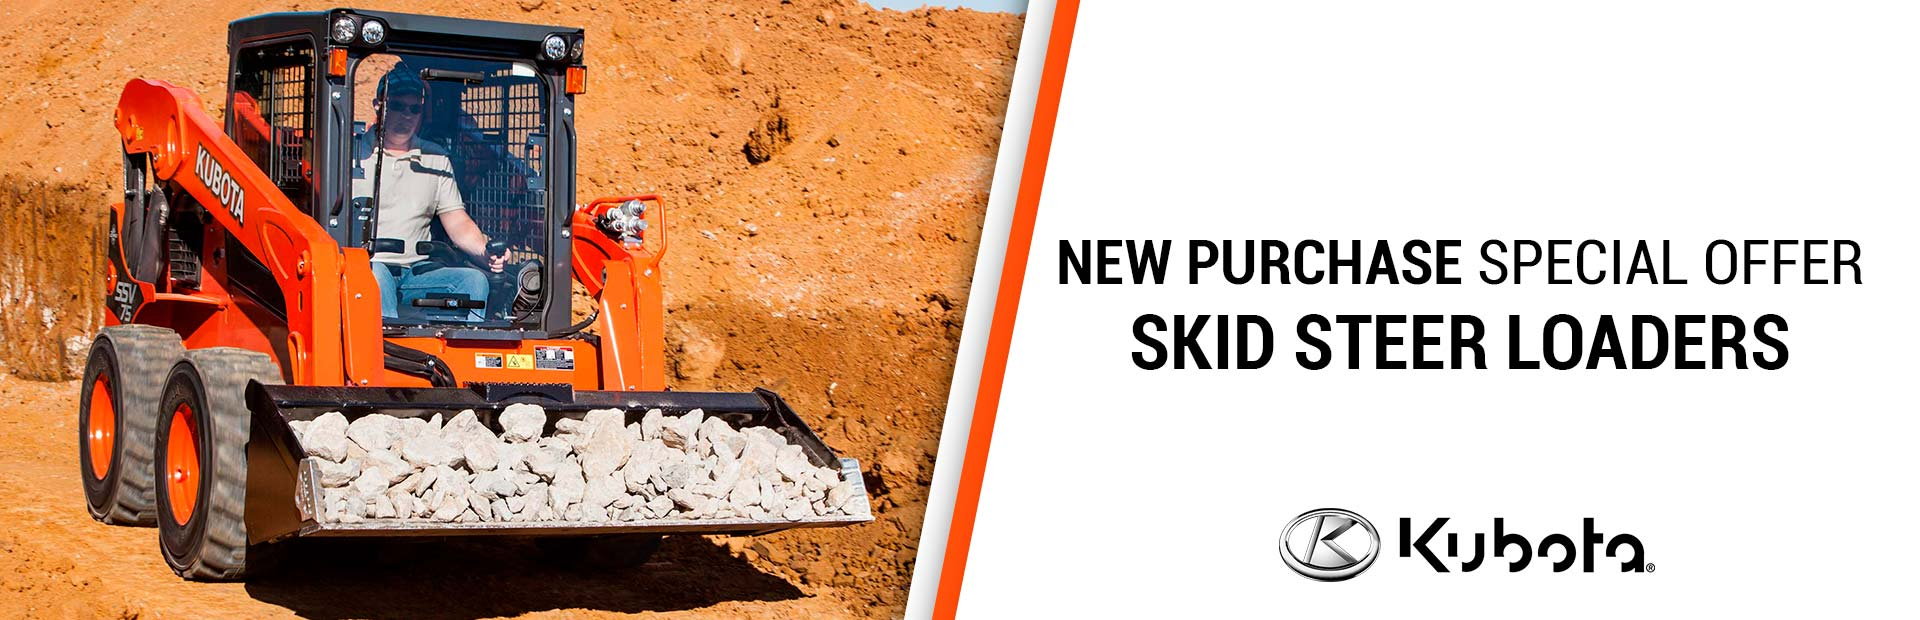 NEW PURCHASE SPECIAL-SKID STEER LOADERS